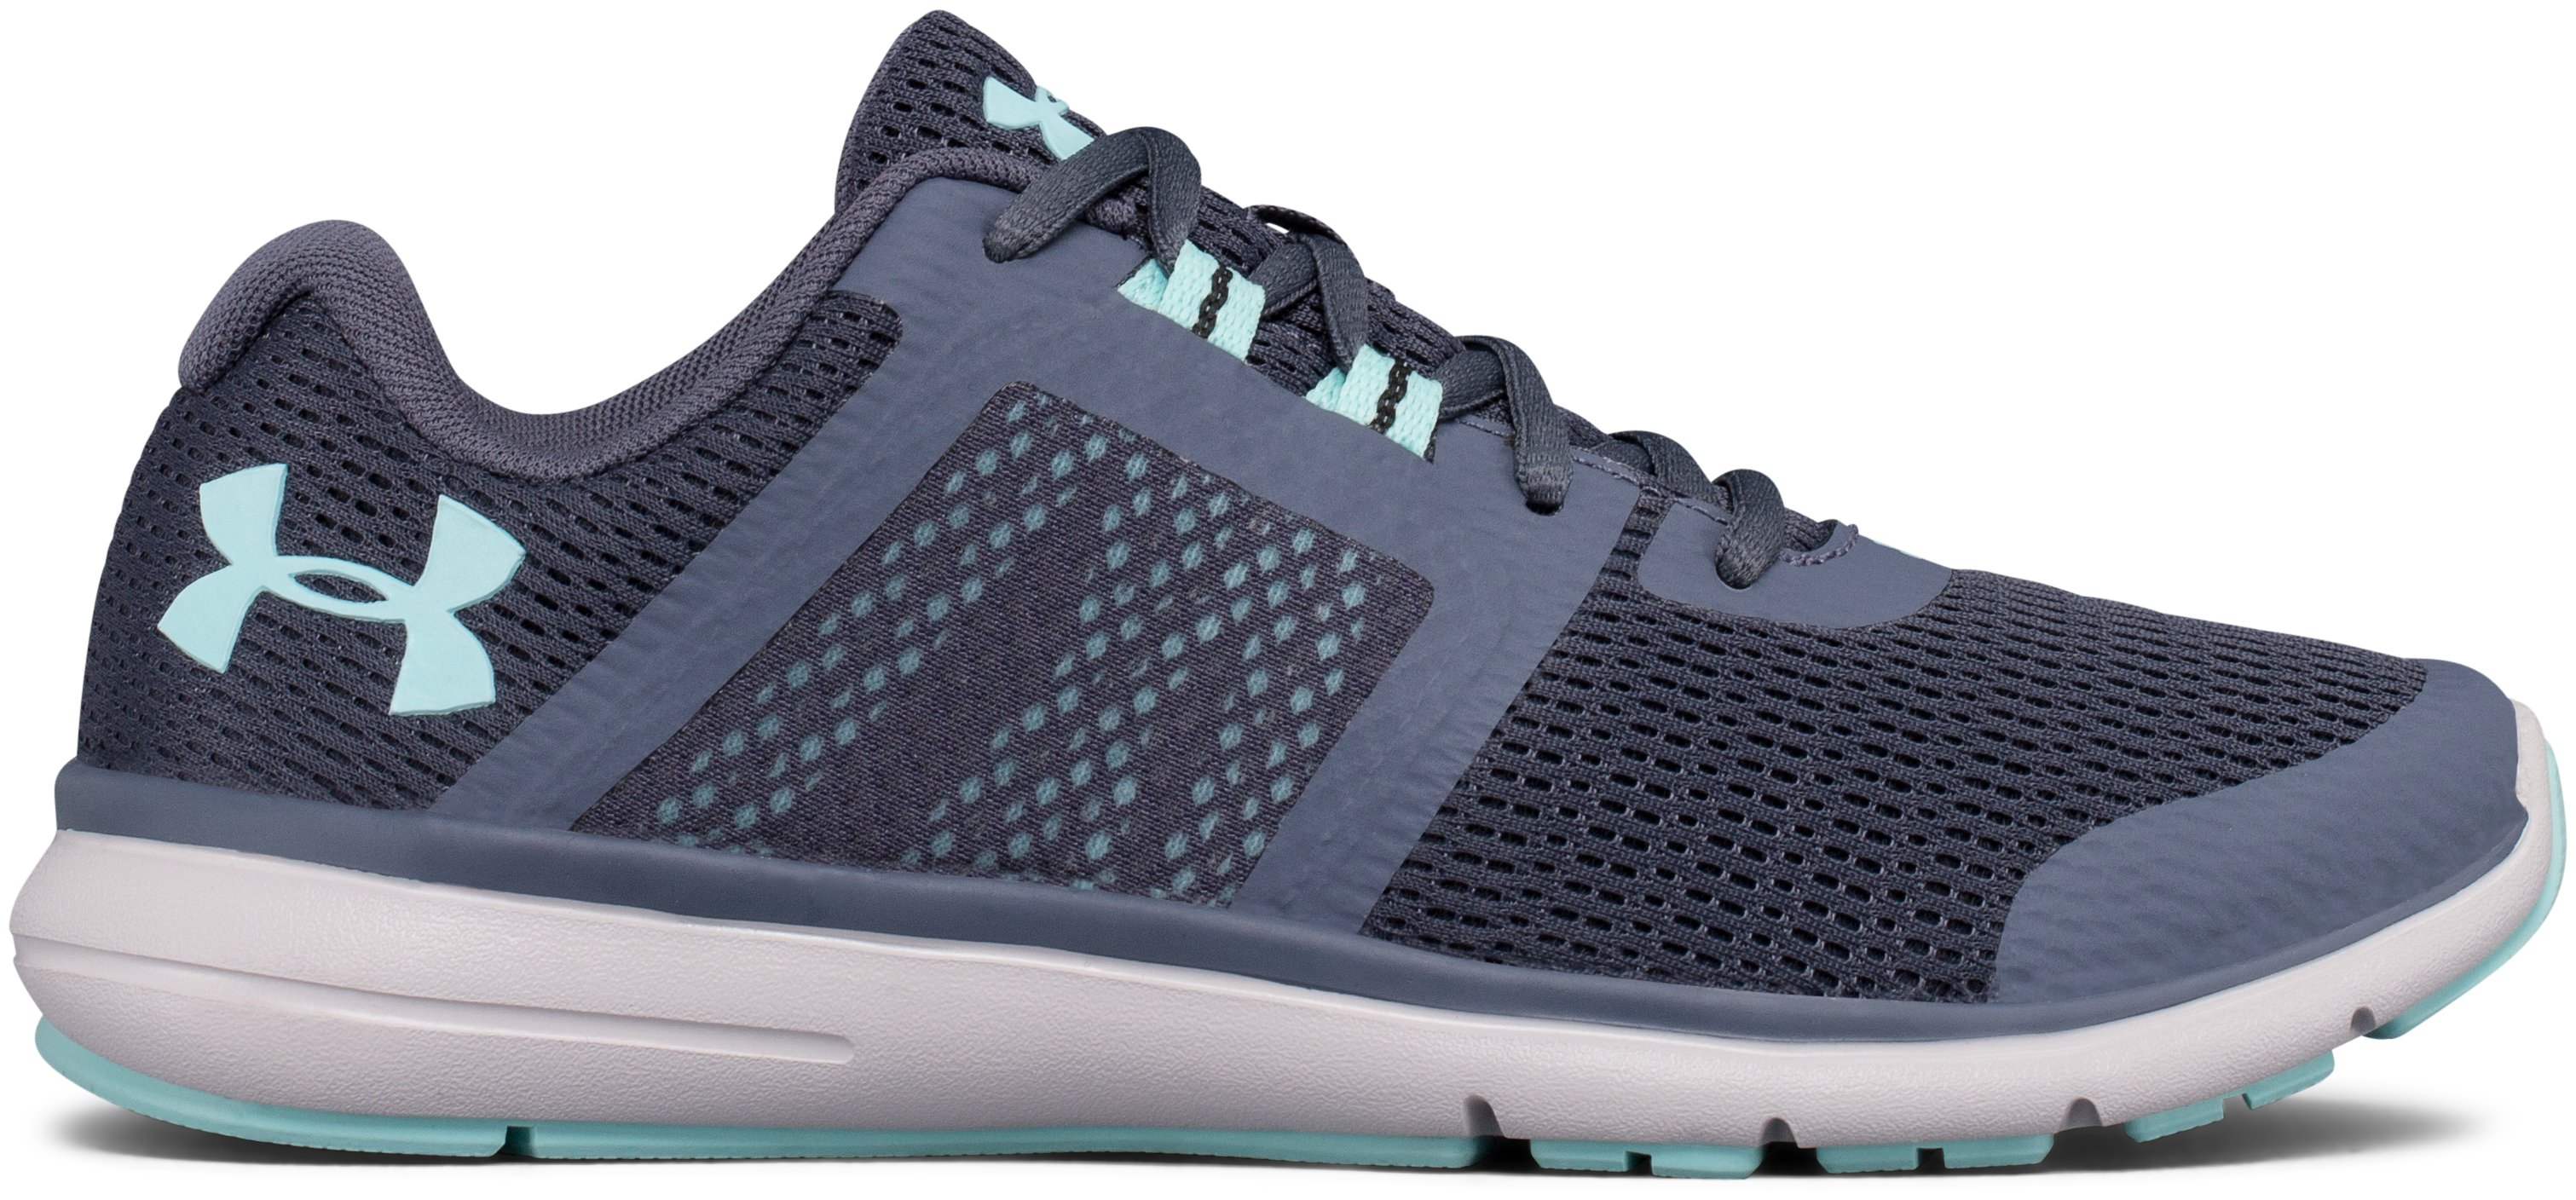 Women's UA Fuse FST D (Wide) Running Shoes, APOLLO GRAY